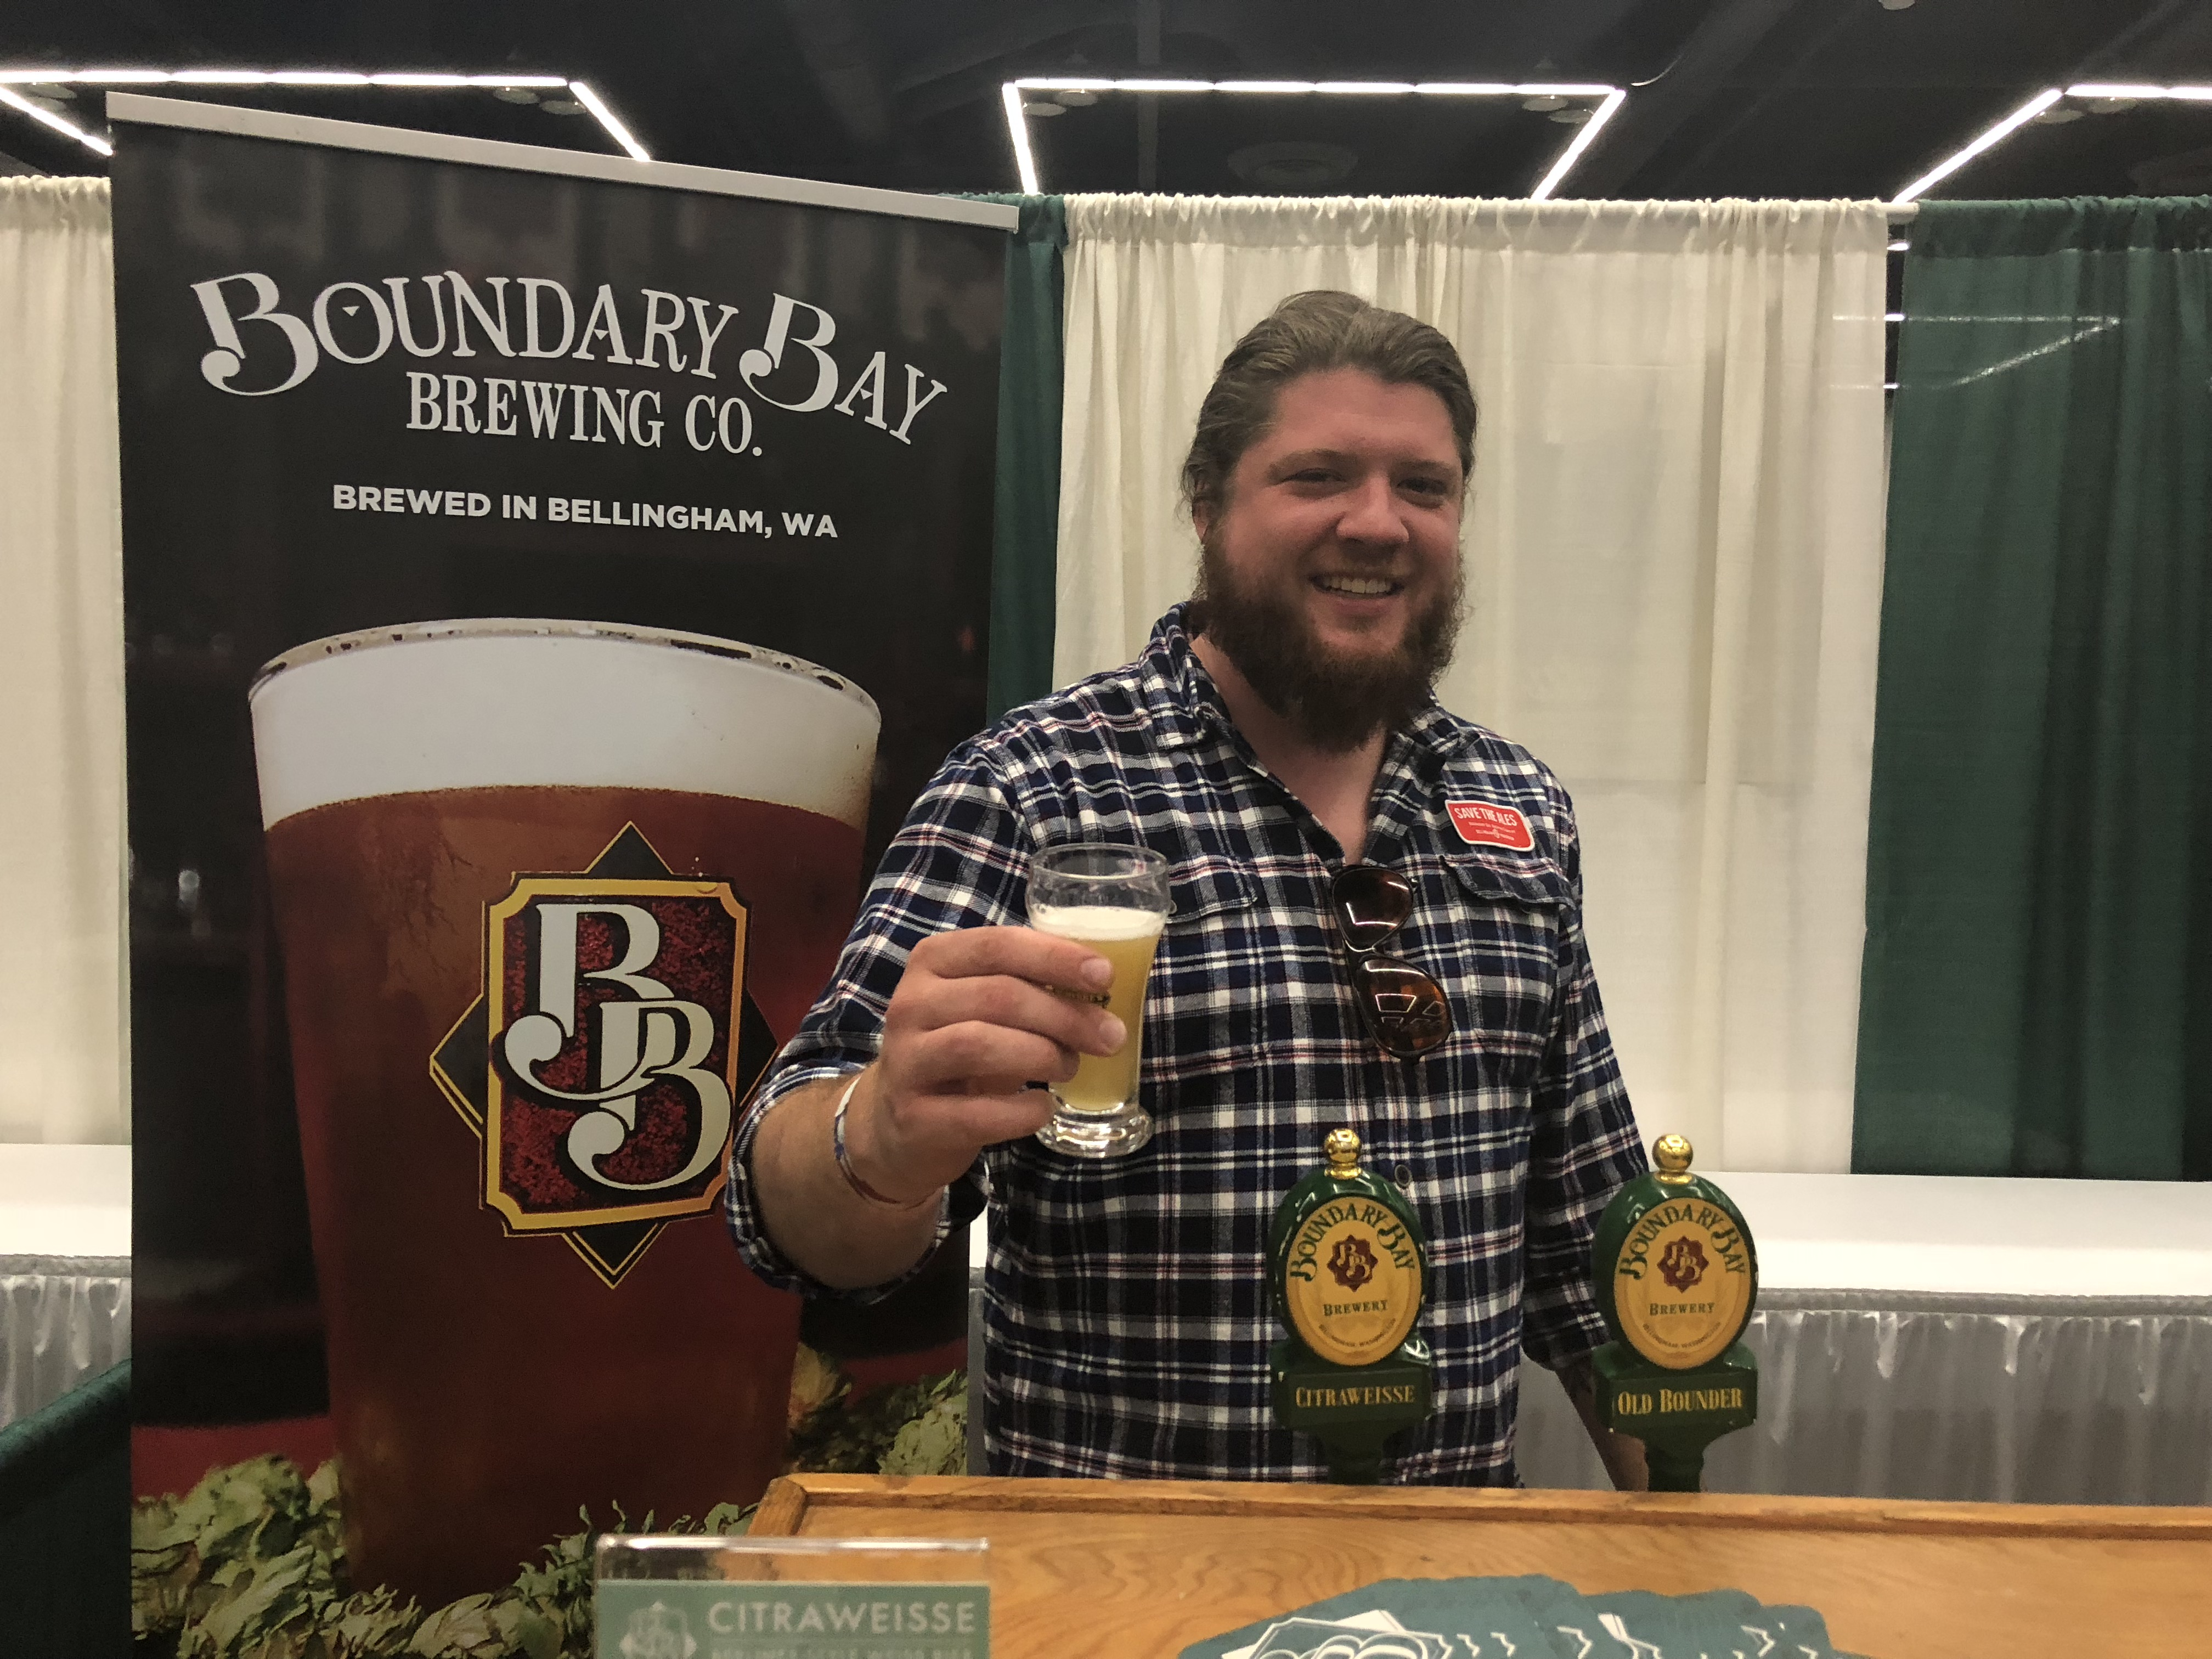 Boundary Bay pouring beer during the Homebrew Con 2018 Kickoff Party.